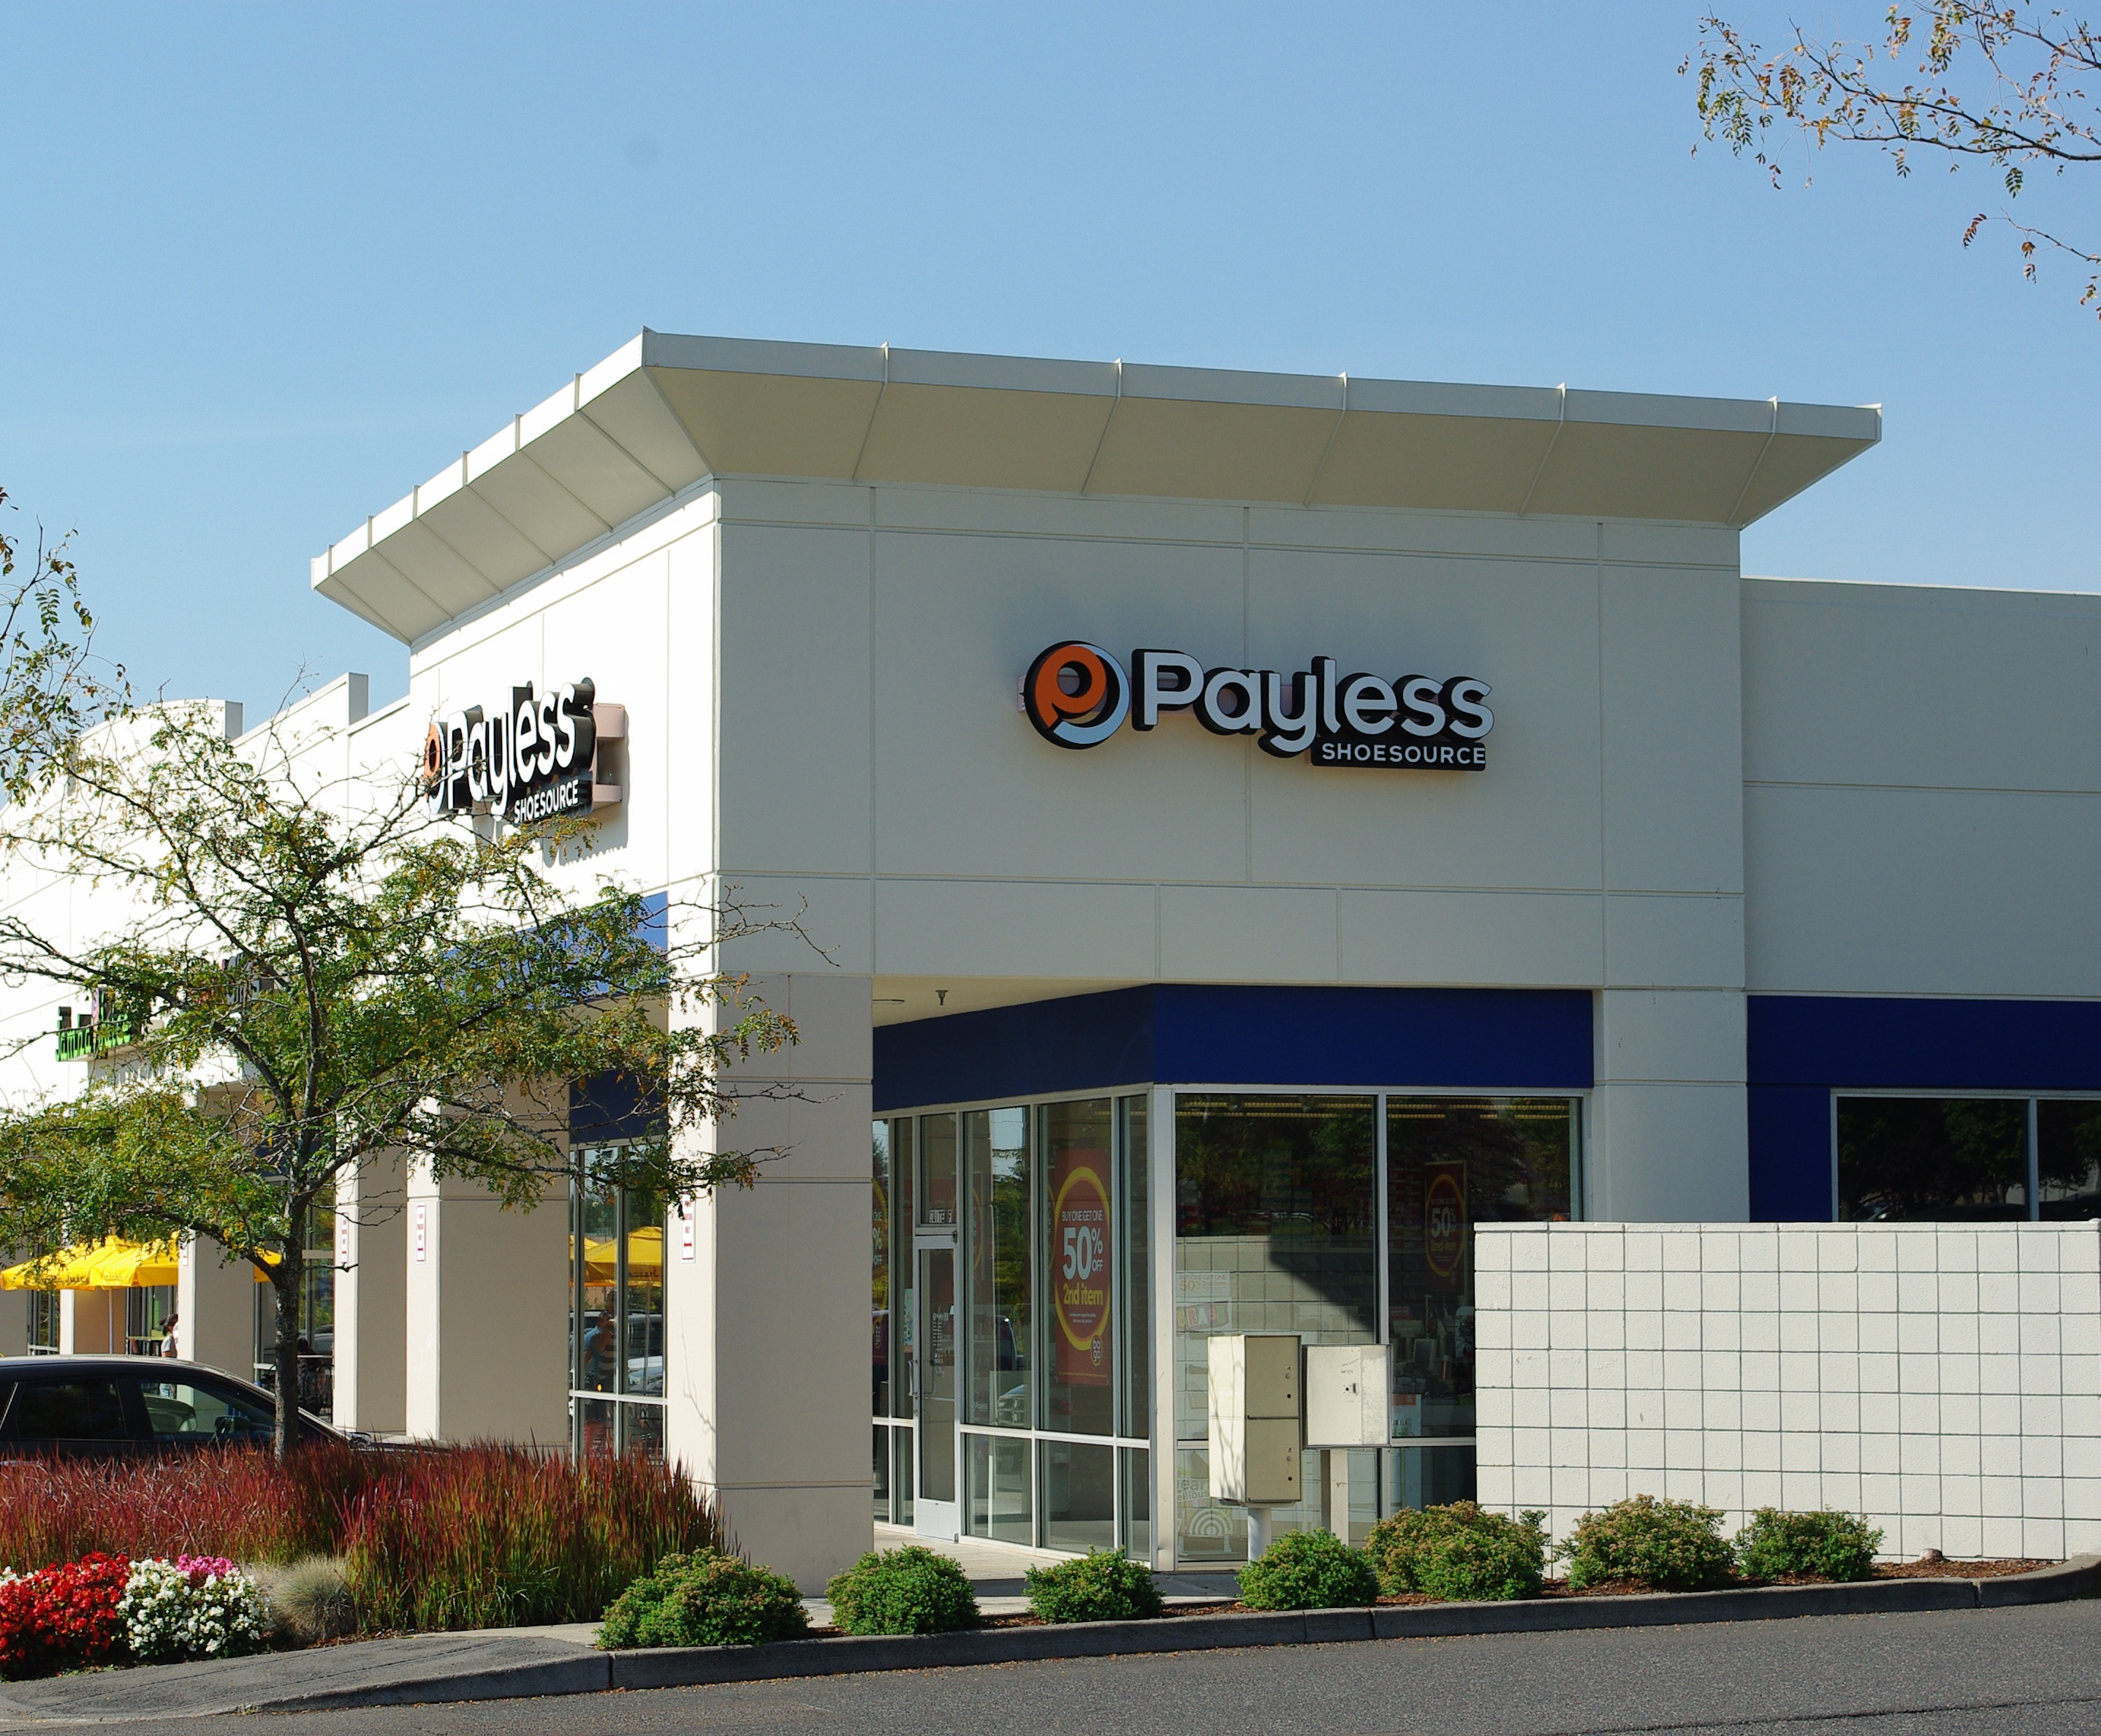 Payless Shoe Store  And Broward Blvd